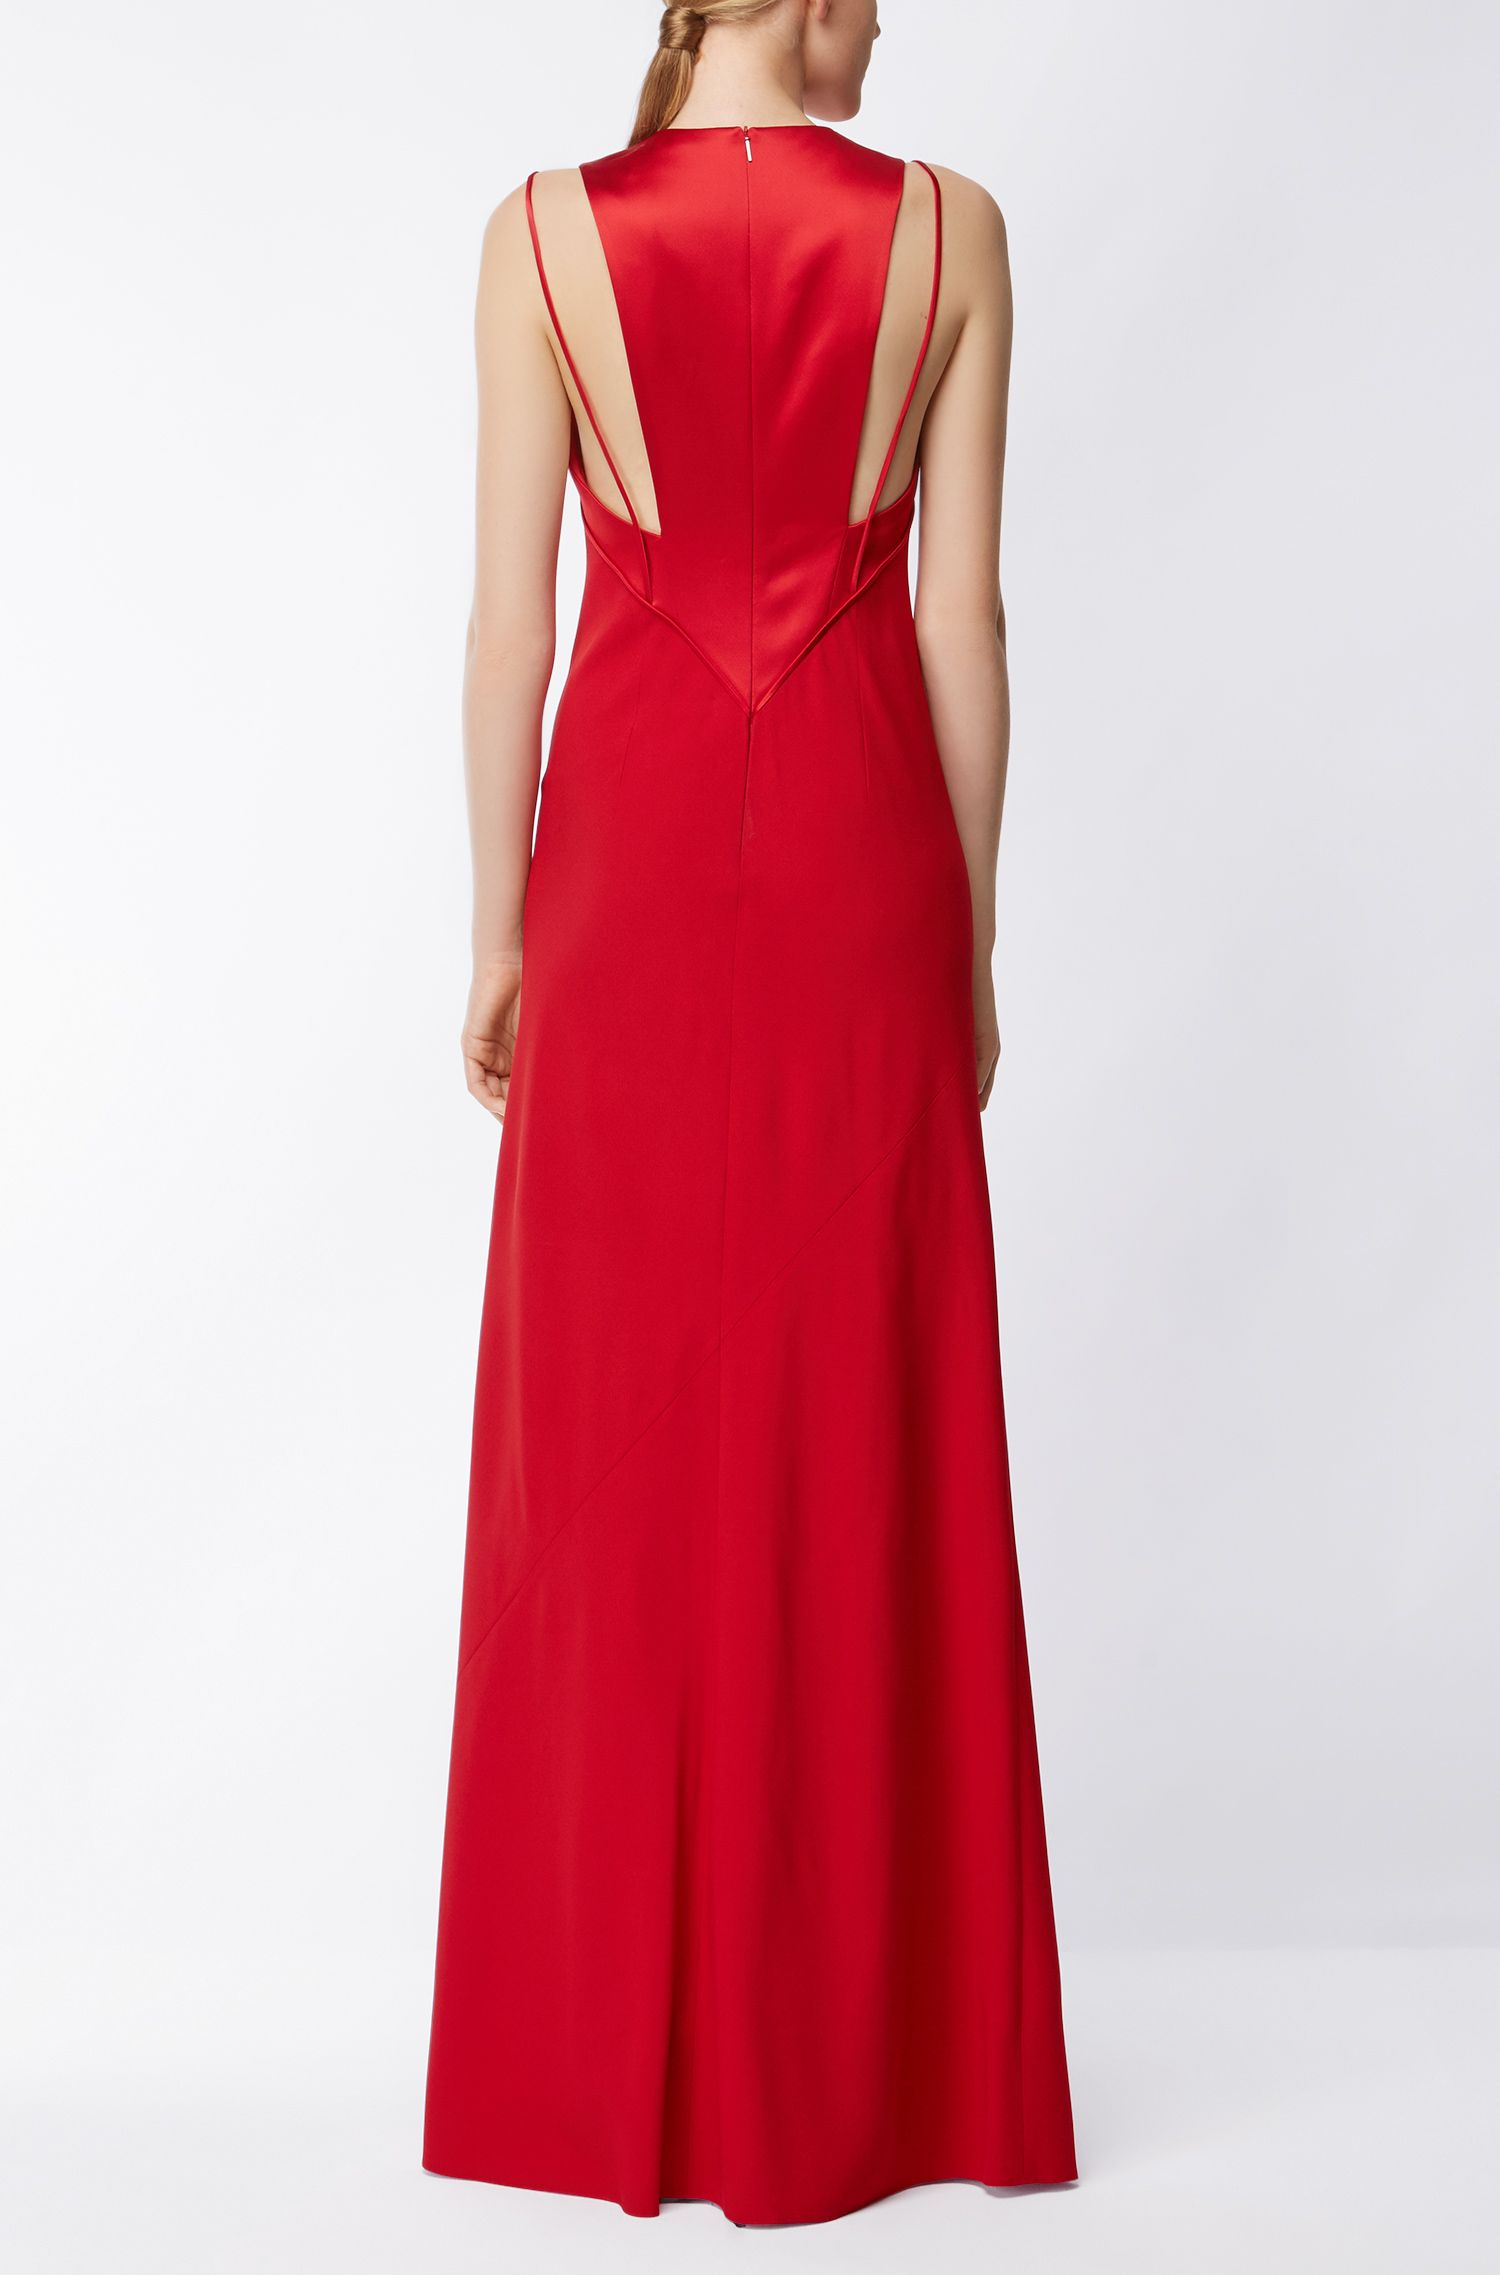 Evening gown in fluid fabric